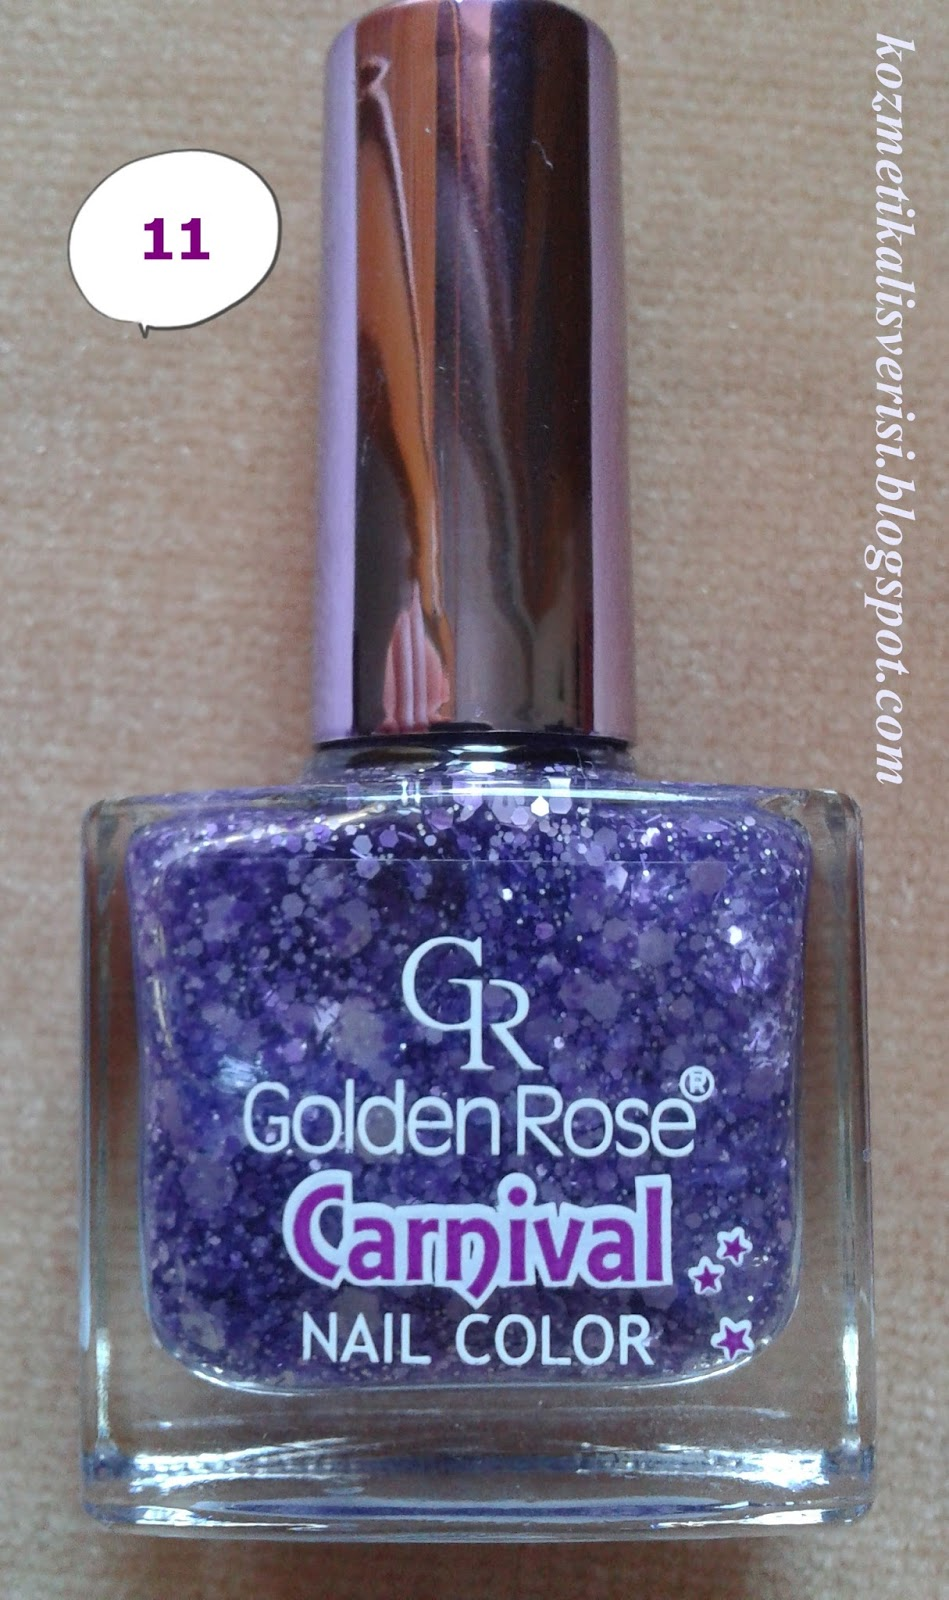 Golden Rose Carnival Nail Color 11